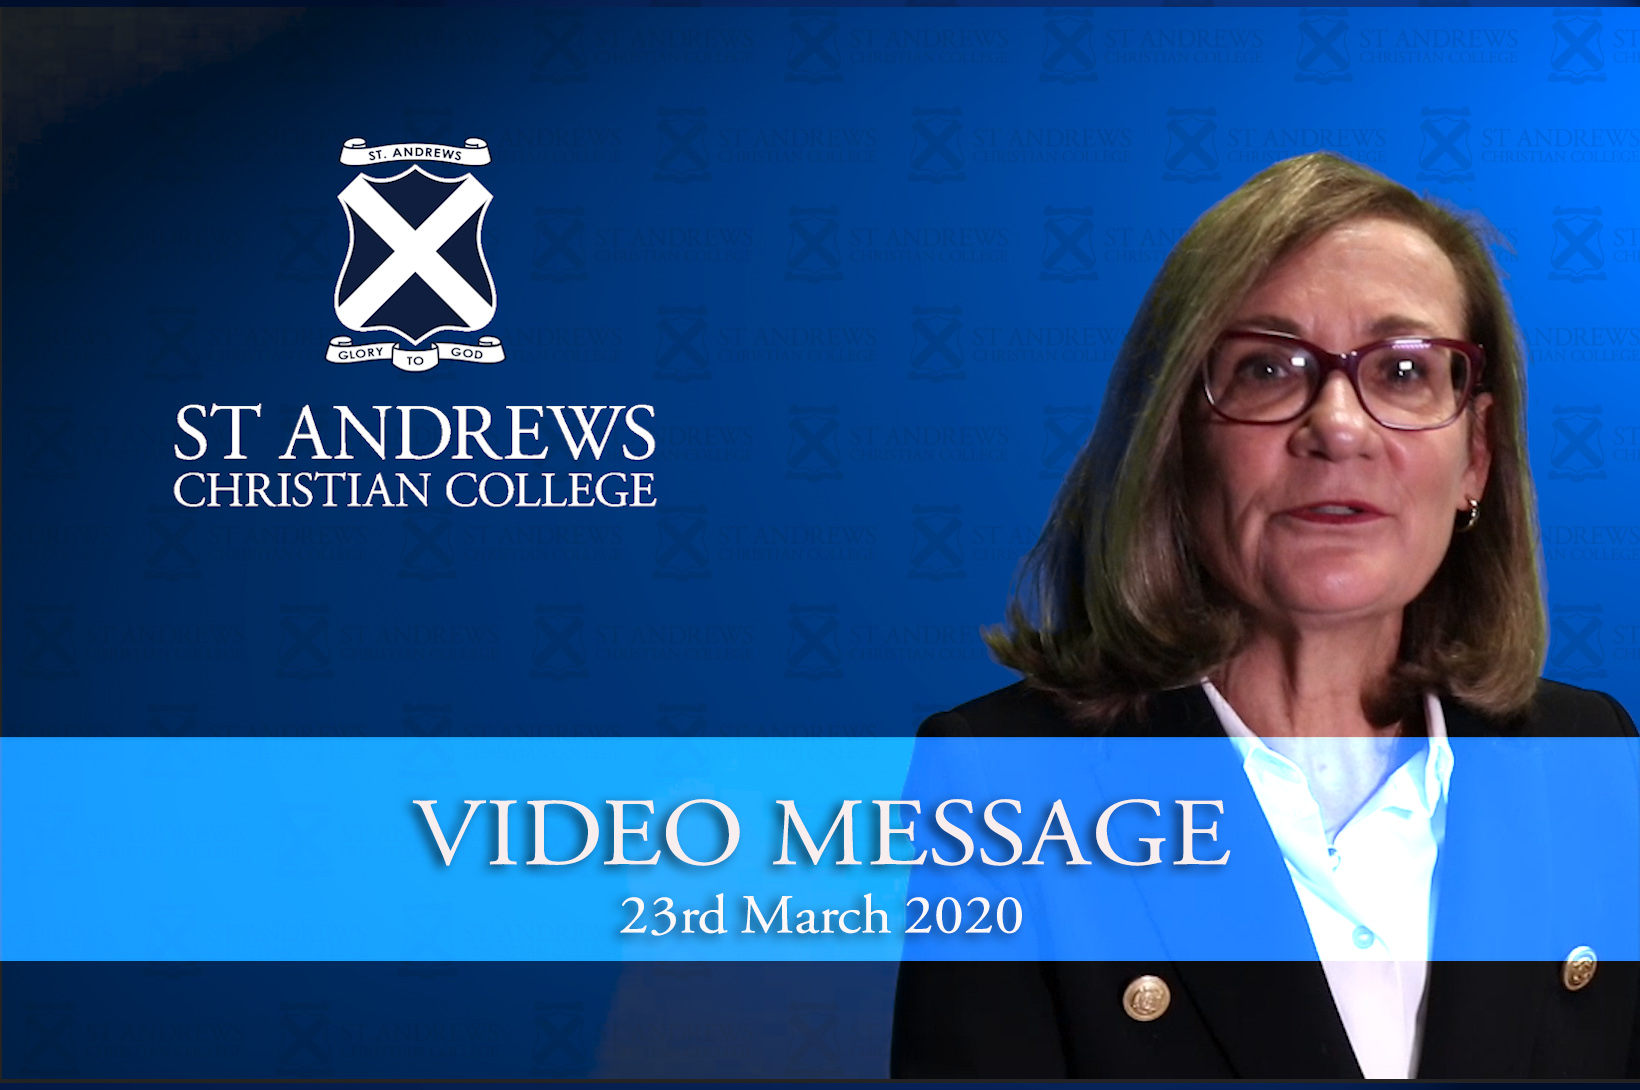 Video Message from School Principal